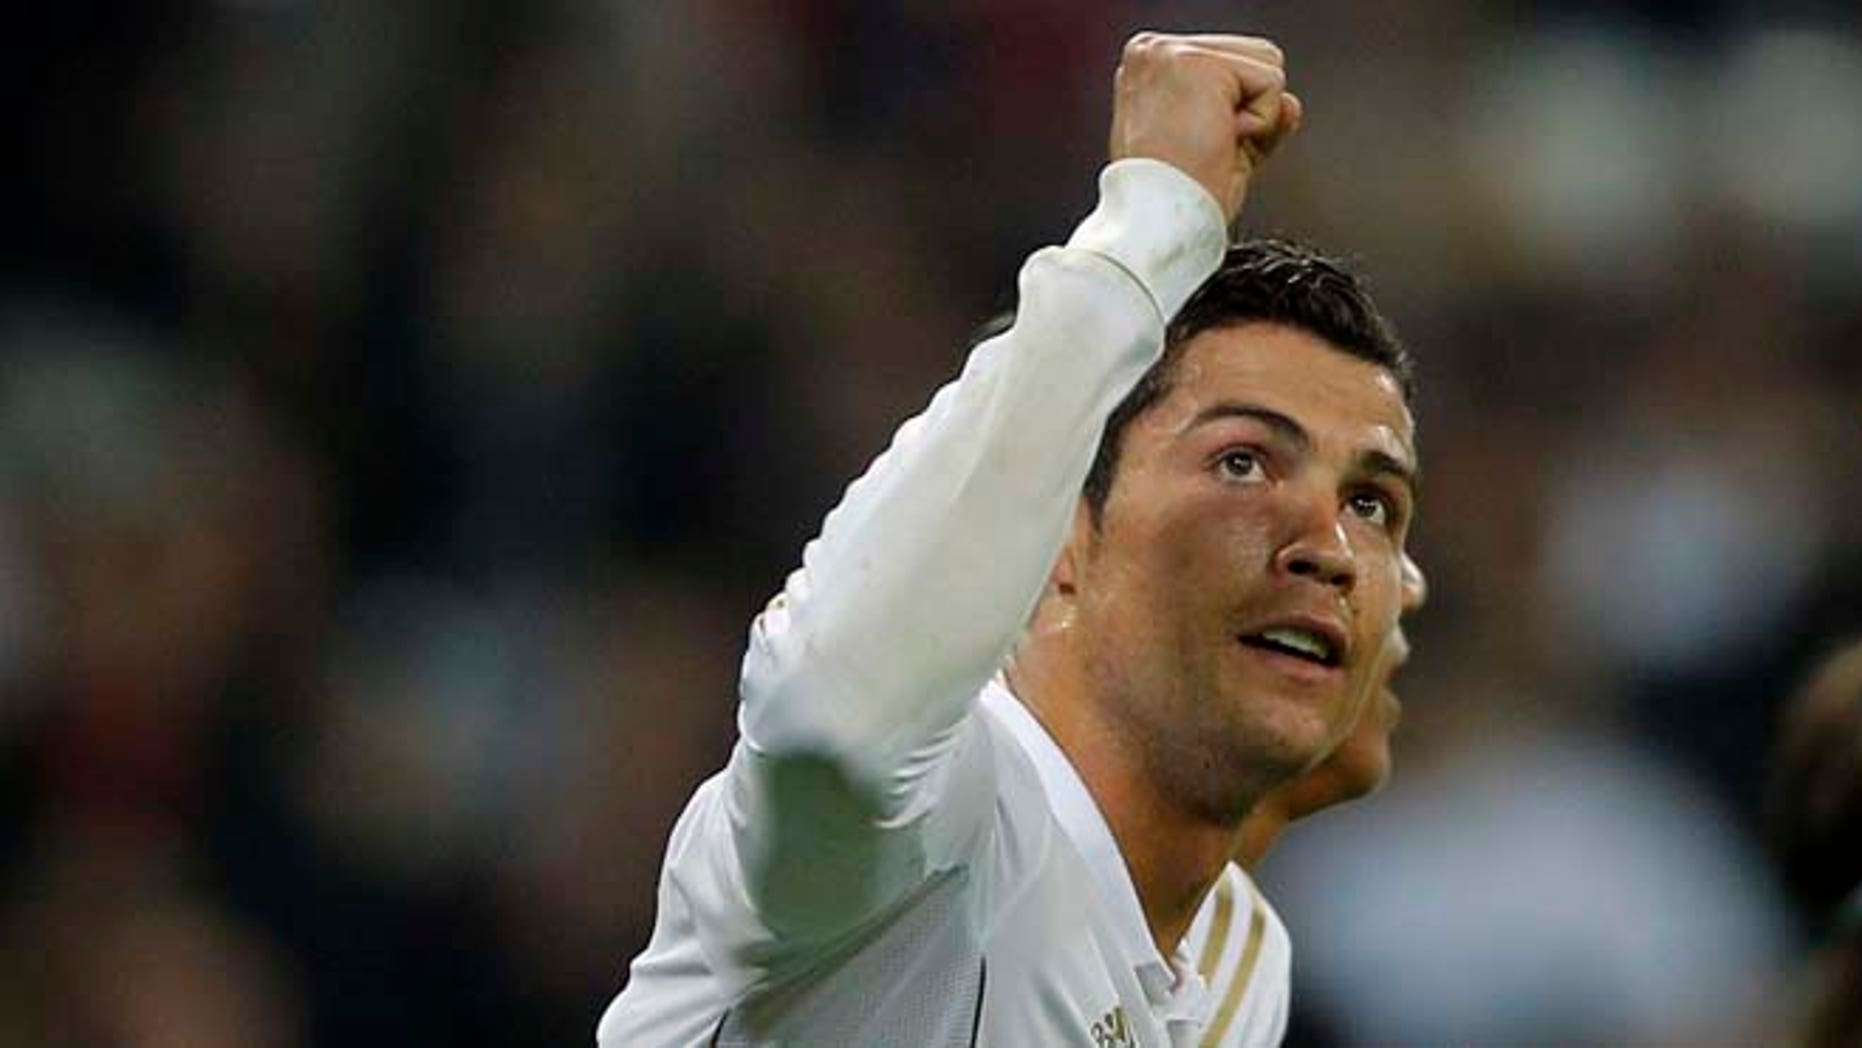 Real Madrid's Cristiano Ronaldo from Portugal celebrates his goal against APOEL Nicosia with during a second leg Champions League quarterfinal soccer match at the Santiago Bernabeu stadium, in Madrid, Wednesday, April 4, 2012.